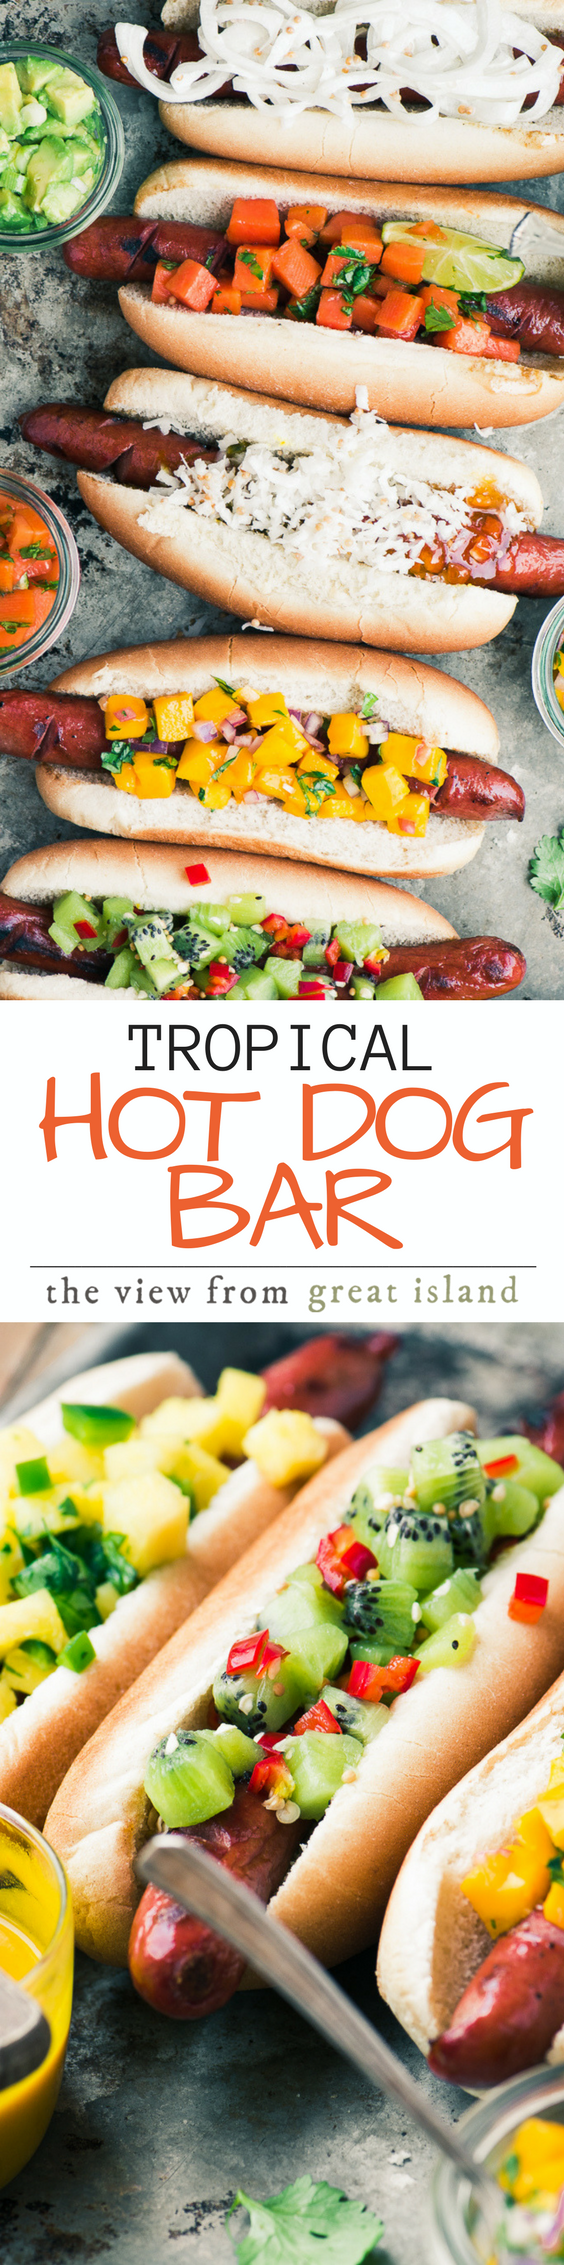 Tropical Hot Dog Bar ~ I admit it, I'm a closet hot dog lover, maybe you are too? Today I'm sharing a slew of exotic toppings, including spicy kiwi relish and Maui onion slaw, that will turn your next barbecue into an island paradise! #hotdogs #barbecue #grilling #sausage #summer #salsa #slaw #condiments #dinner #relish #4thofjuly #memorialday